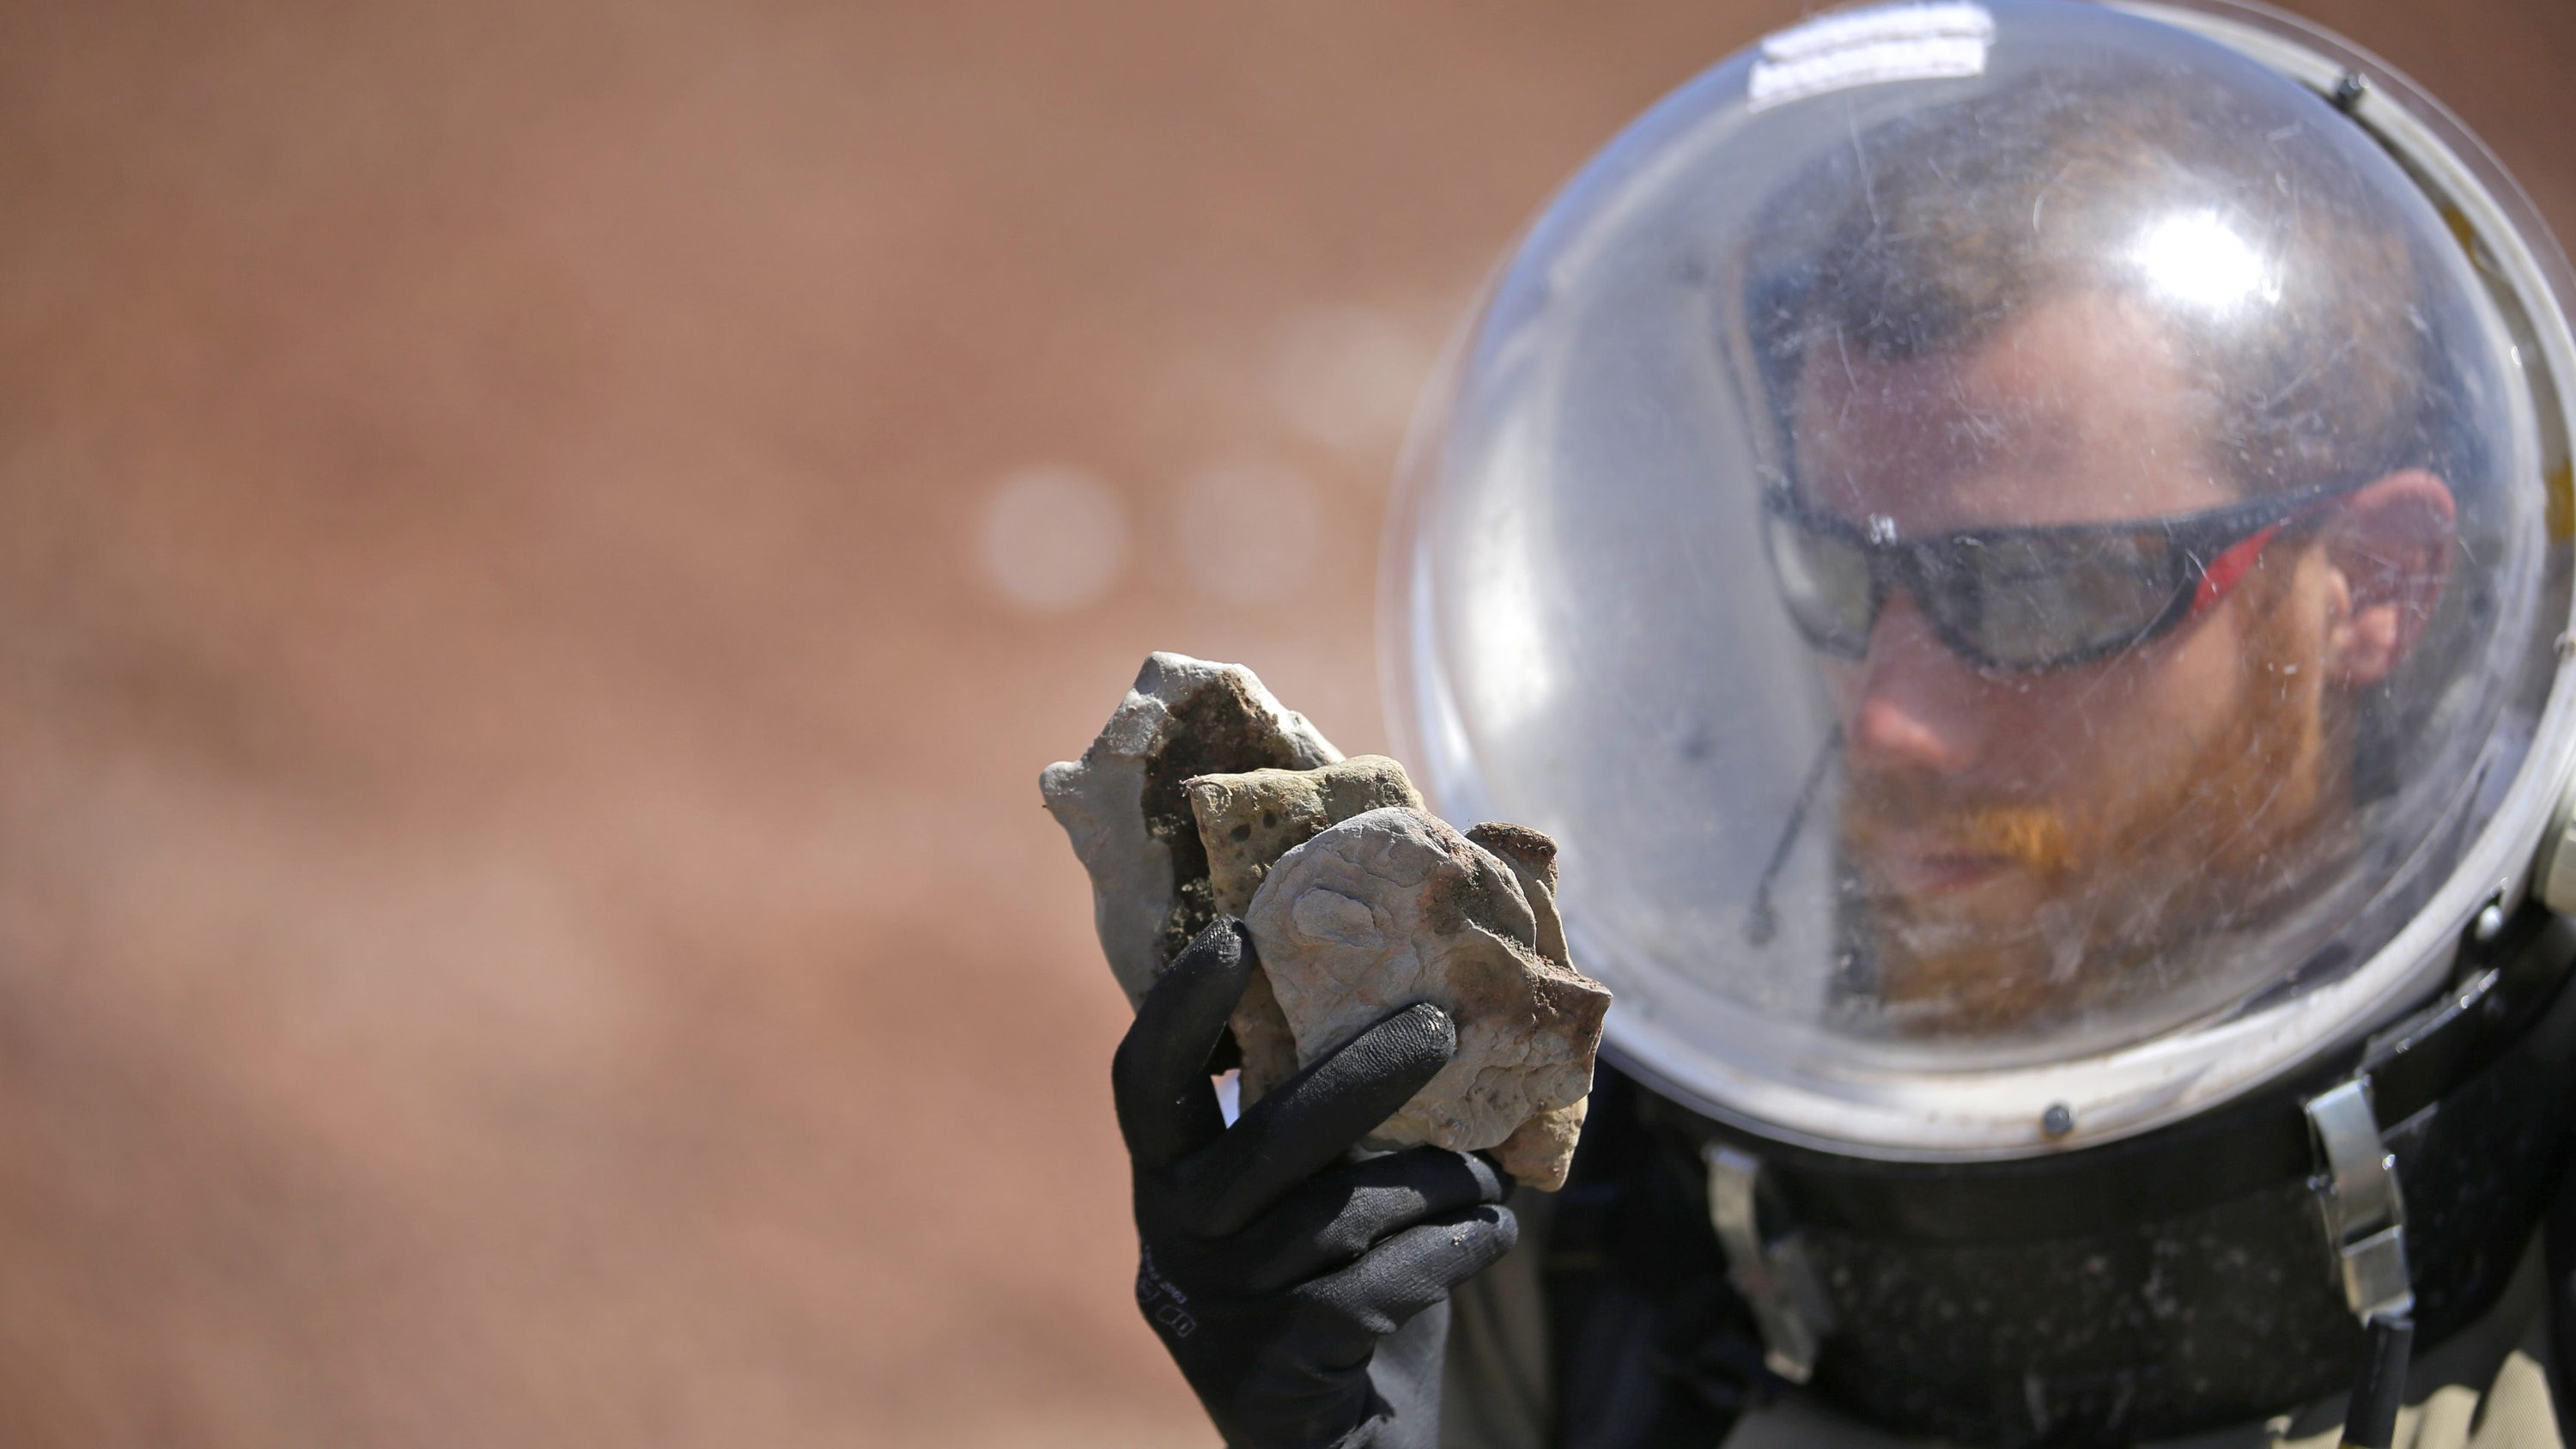 In this photo taken on Saturday, April 18, 2015, Florian Commans, crew biologist and greenhab officier, of Crew 153, studies a collection of rocks near the Mars Desert Research Station, in Hanksville, Utah. This isn't Mars, but it's resemblance to the red planet has made it a hot spot for teams of geologists, biologists and engineers from around the world who have been coming for more than a decade to simulate missions to the mysterious planet in hopes of providing critical research to for future trips to Mars.